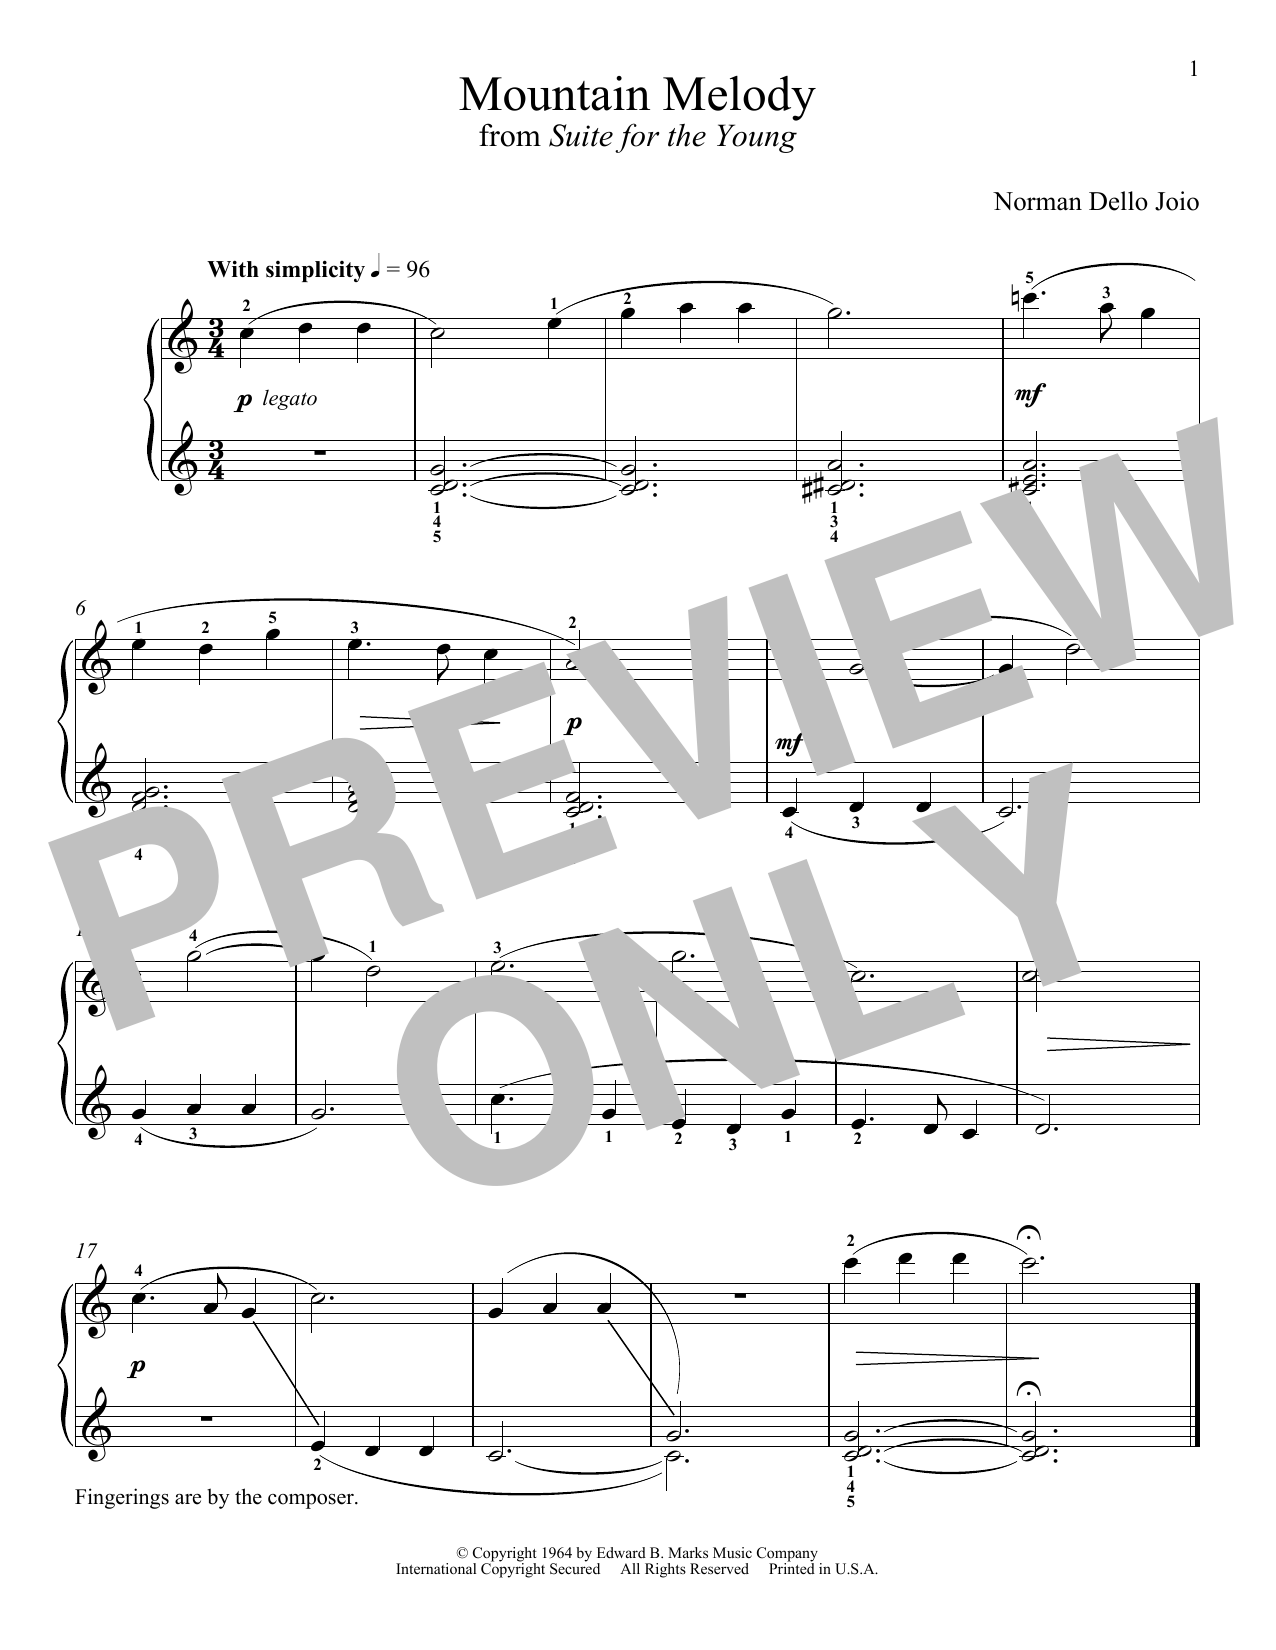 Download Norman Dello Joio 'Mountain Melody' Digital Sheet Music Notes & Chords and start playing in minutes